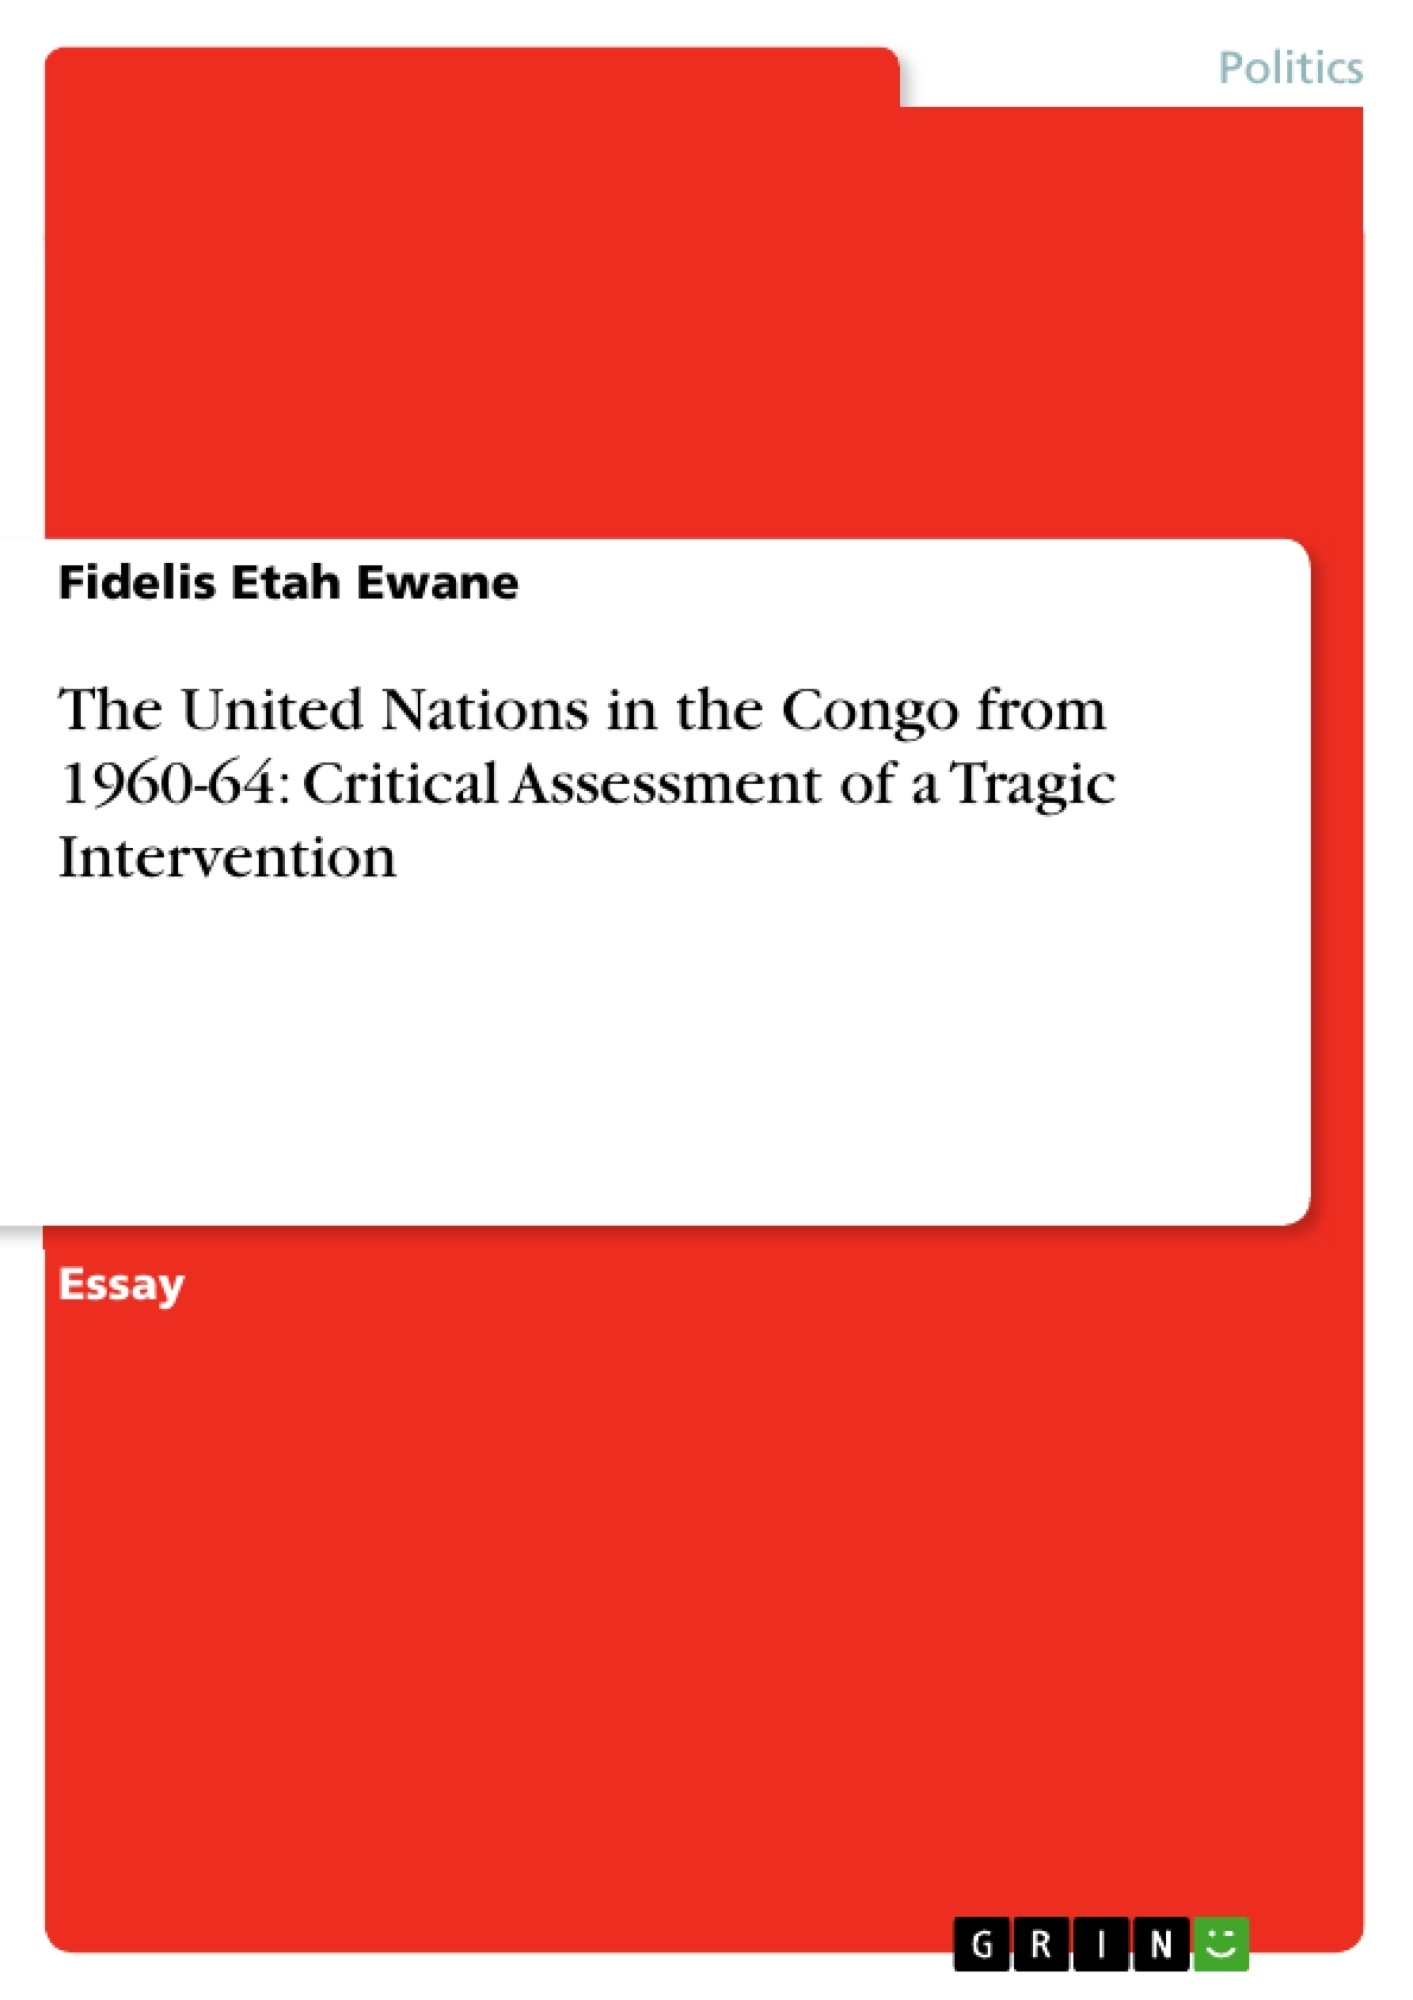 Title: The United Nations in the Congo from 1960-64: Critical Assessment of a Tragic Intervention